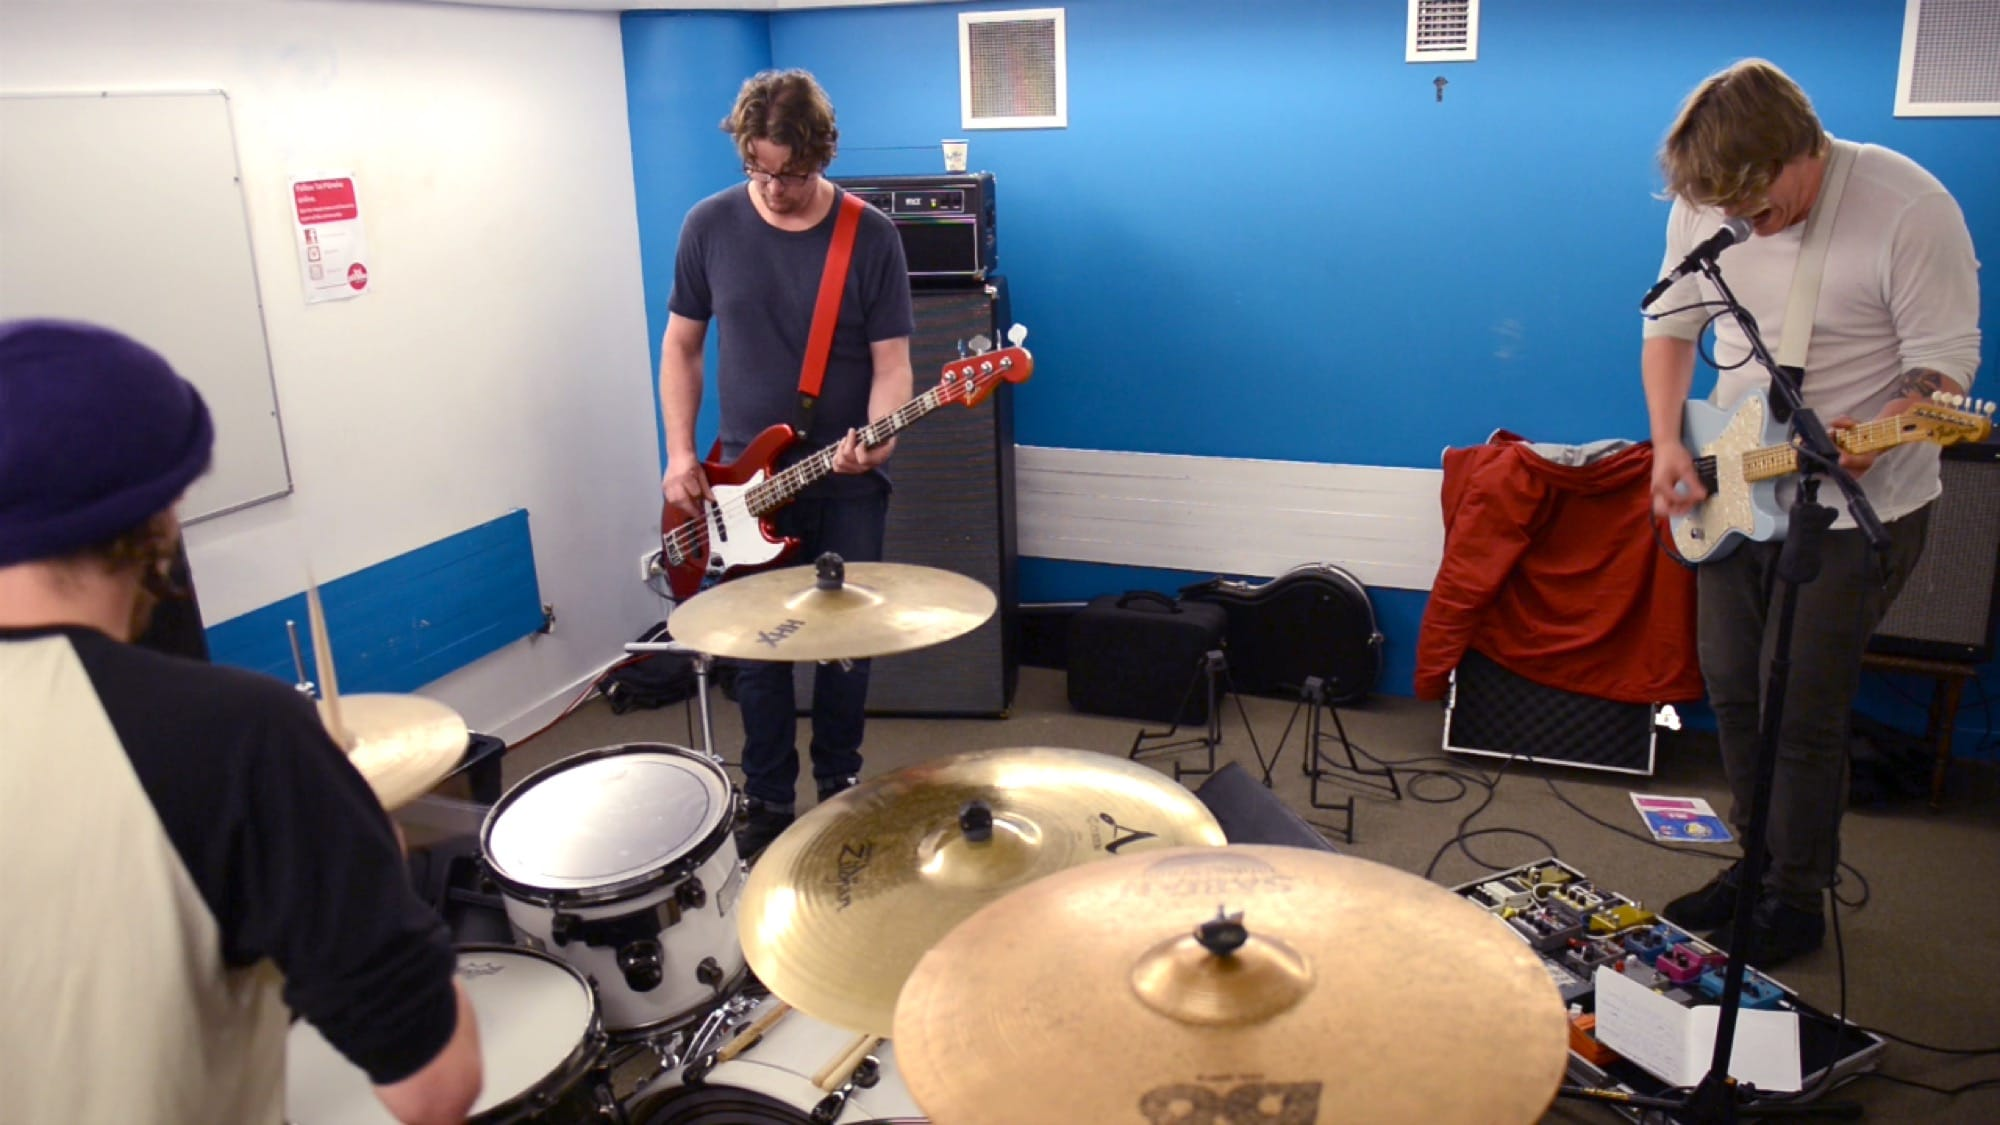 Hollywood Fun Downstairs practising in one of the smaller music studios